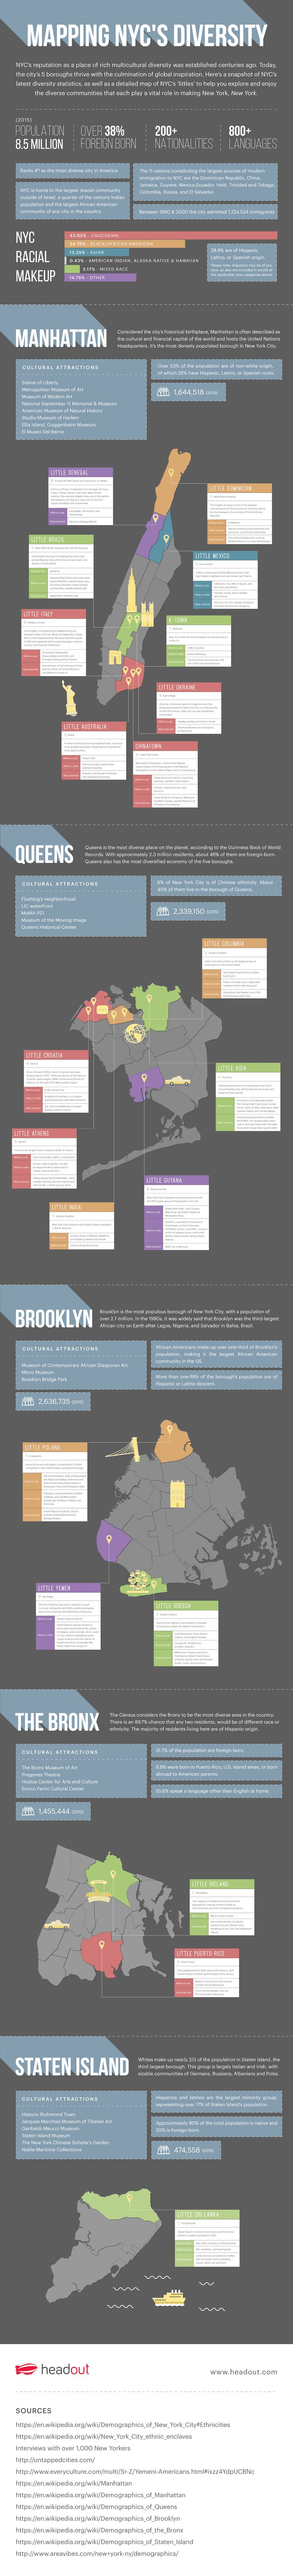 Mapping NYC's Diversity